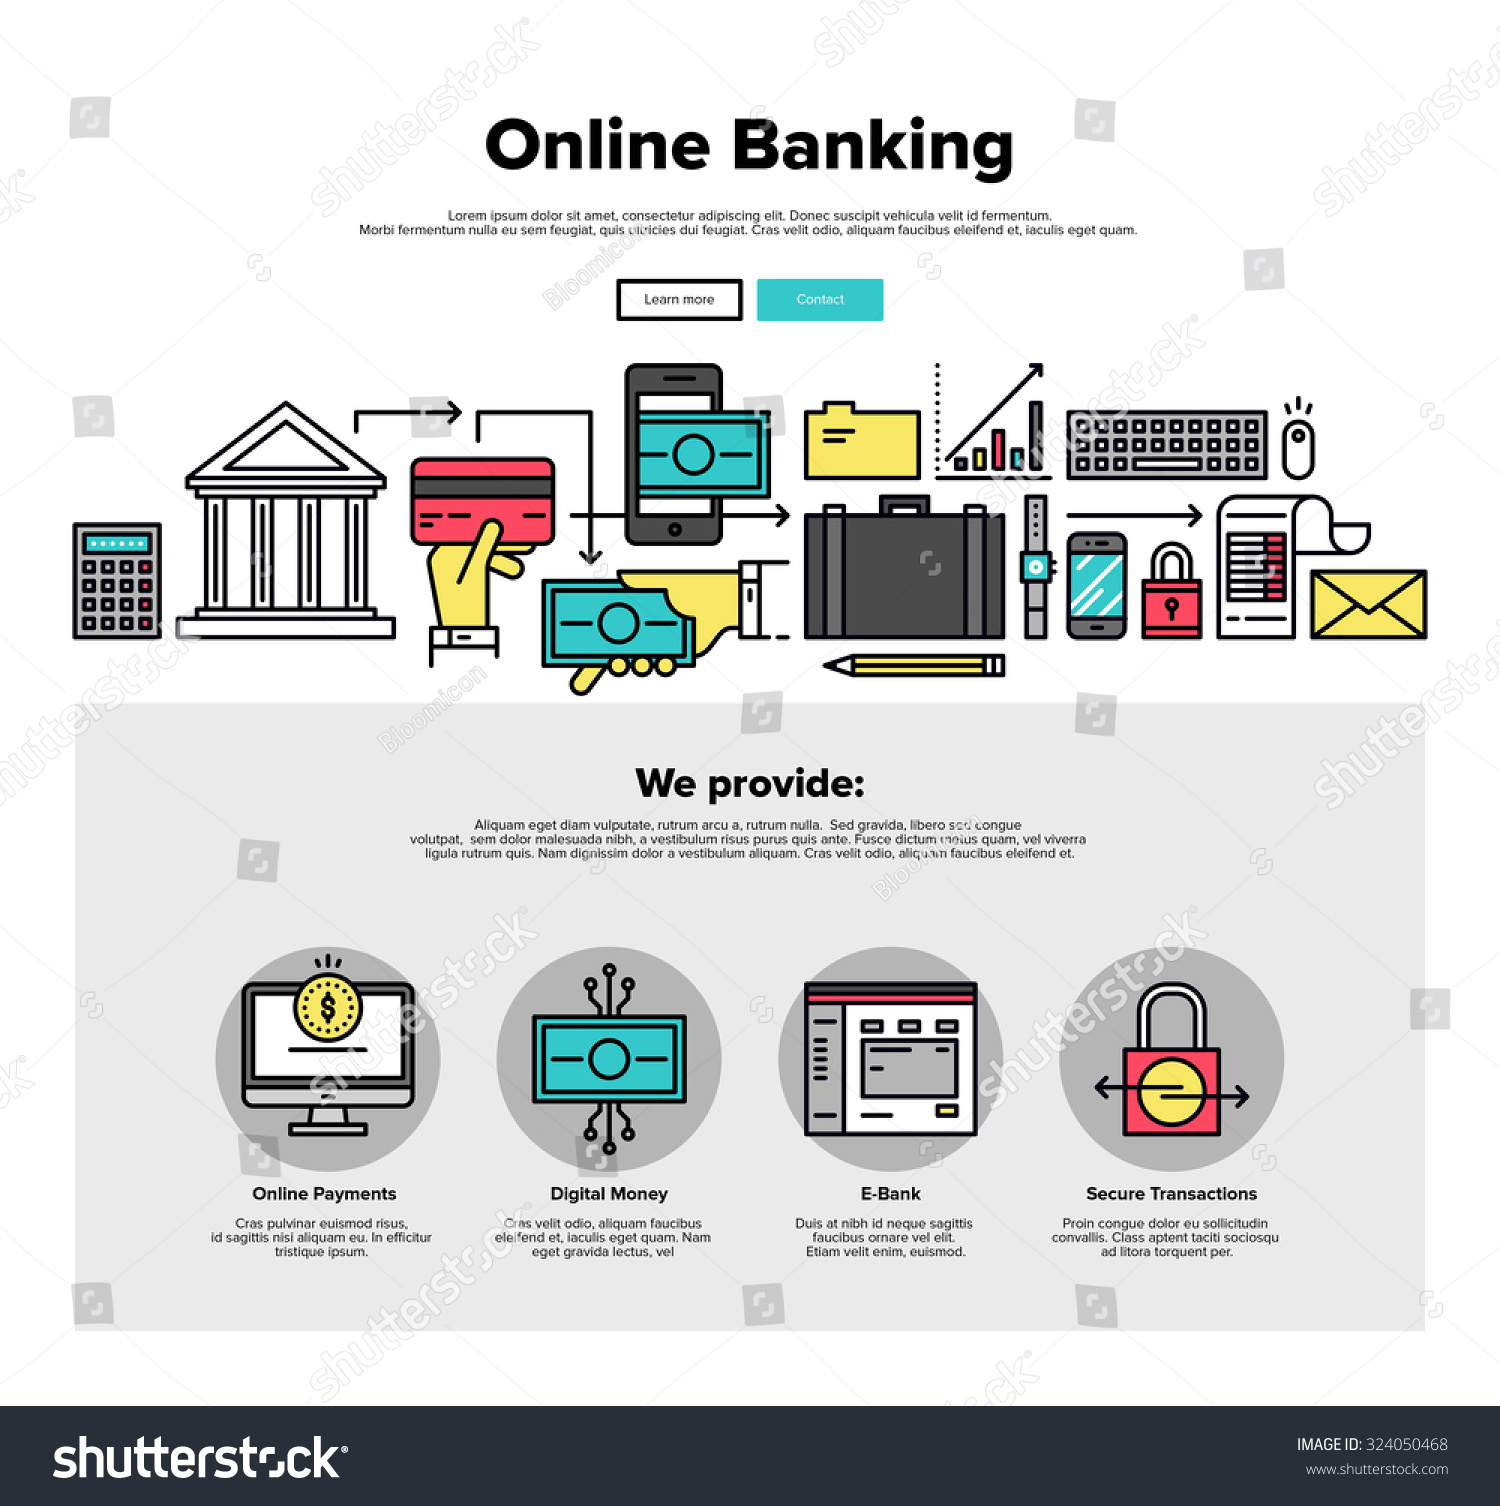 Image gallery online banking services for Online architect services